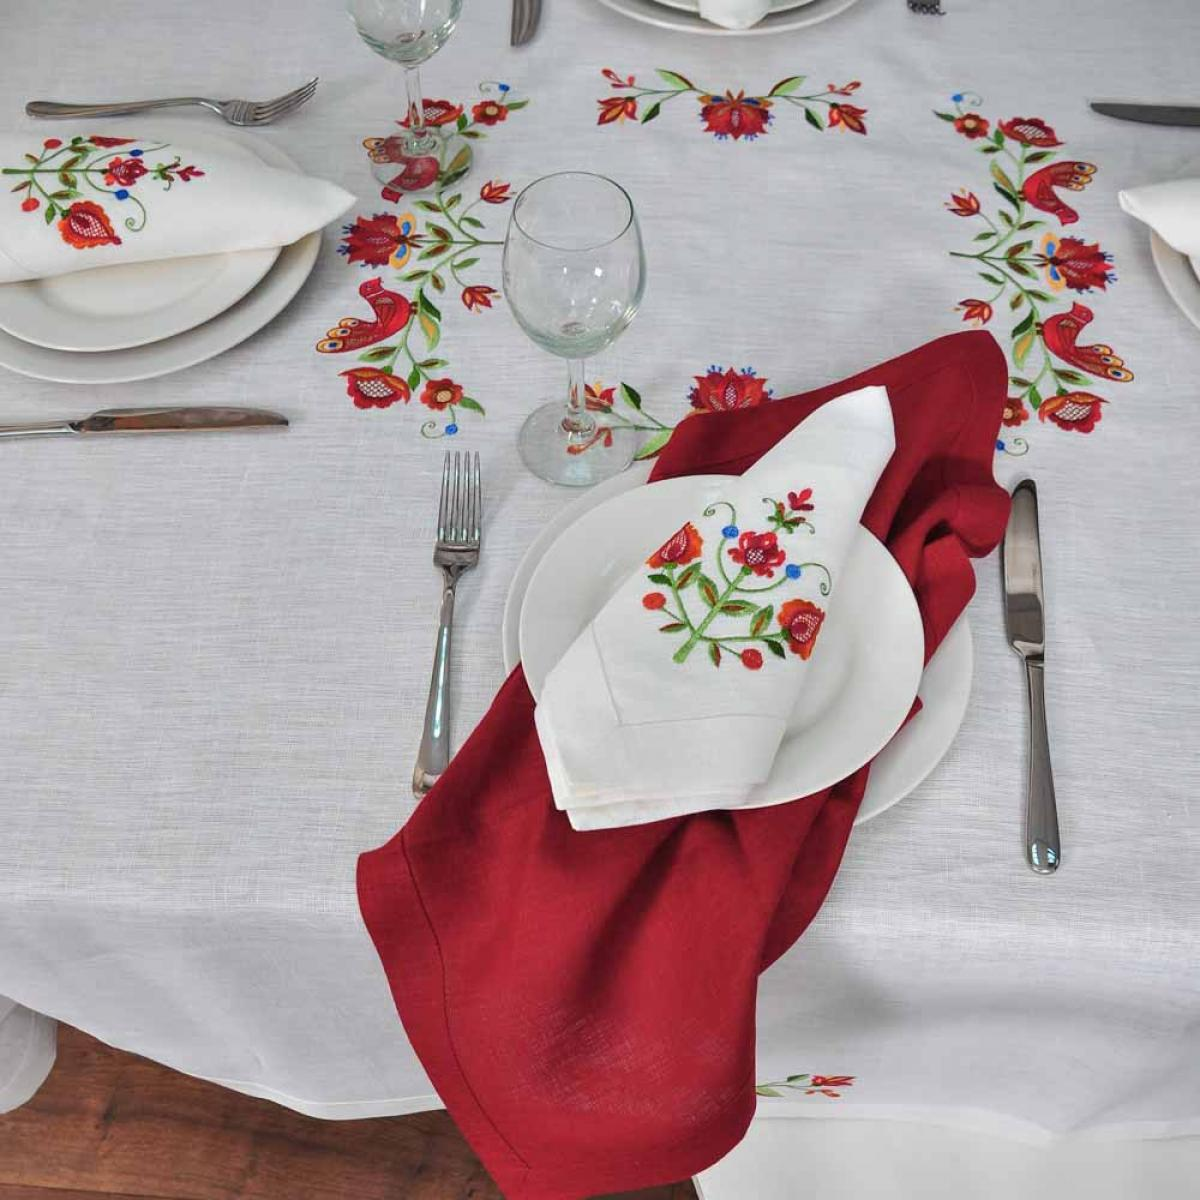 Tablecloth with napkins for 4 persons TREE OF LIFE 160 * 150 cm + 4 napkins. Photo №1. | Narodnyi dim Ukraine